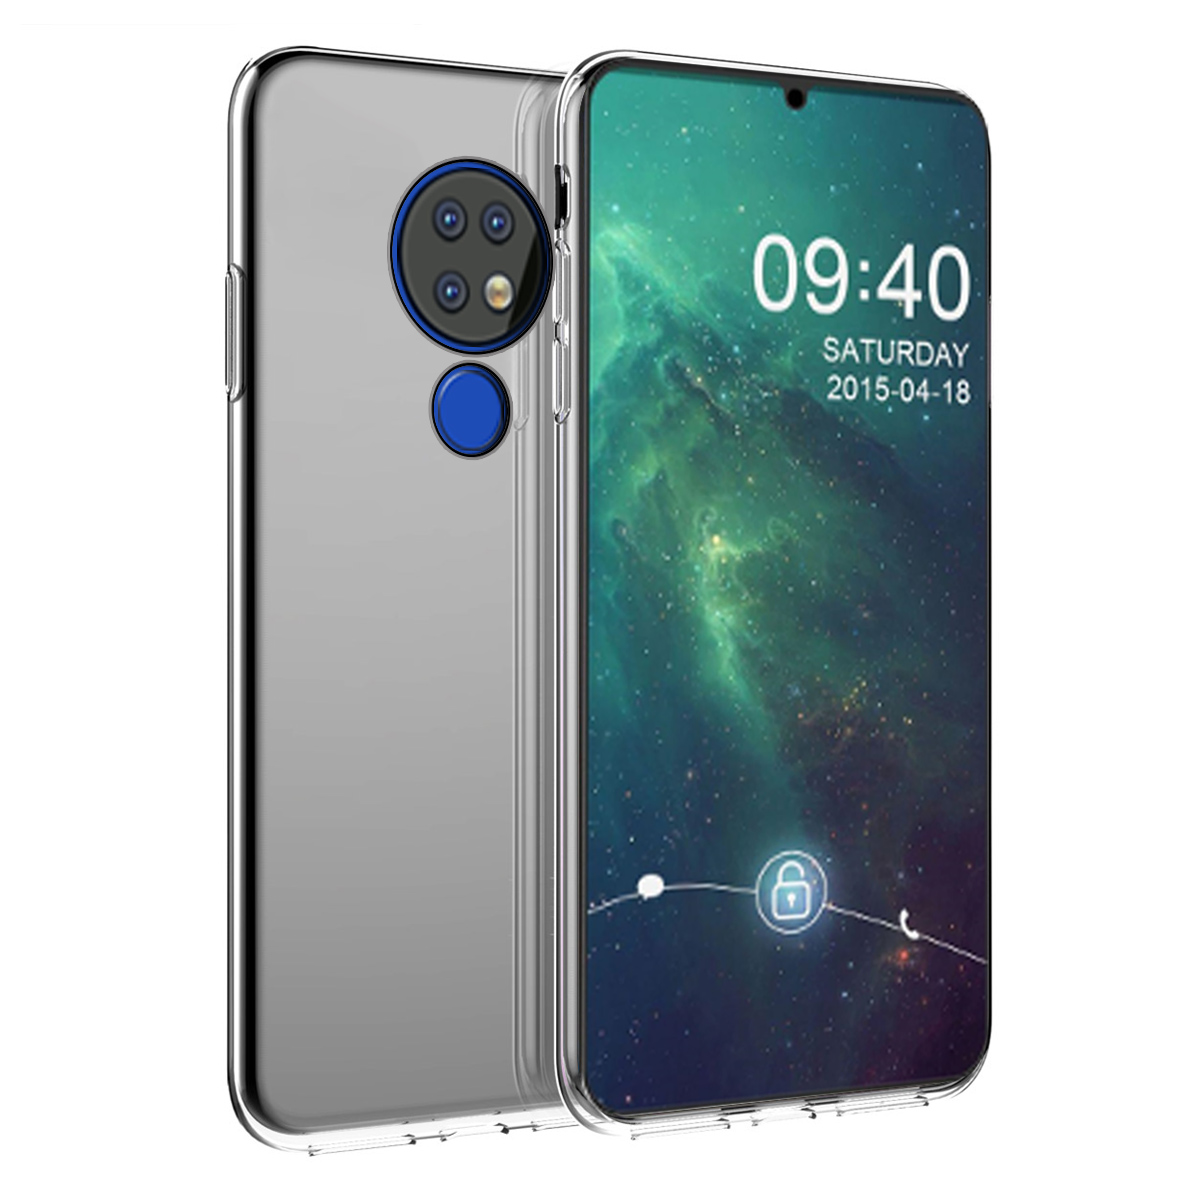 For Nokia 7.2 6.2 7.1 8.1 2.2 4.2 3.2 X7 X6 X3 X71 Case Ultra-Thin Transparent Silicone Shockproof Soft TPU Cover For Nokia 6.2